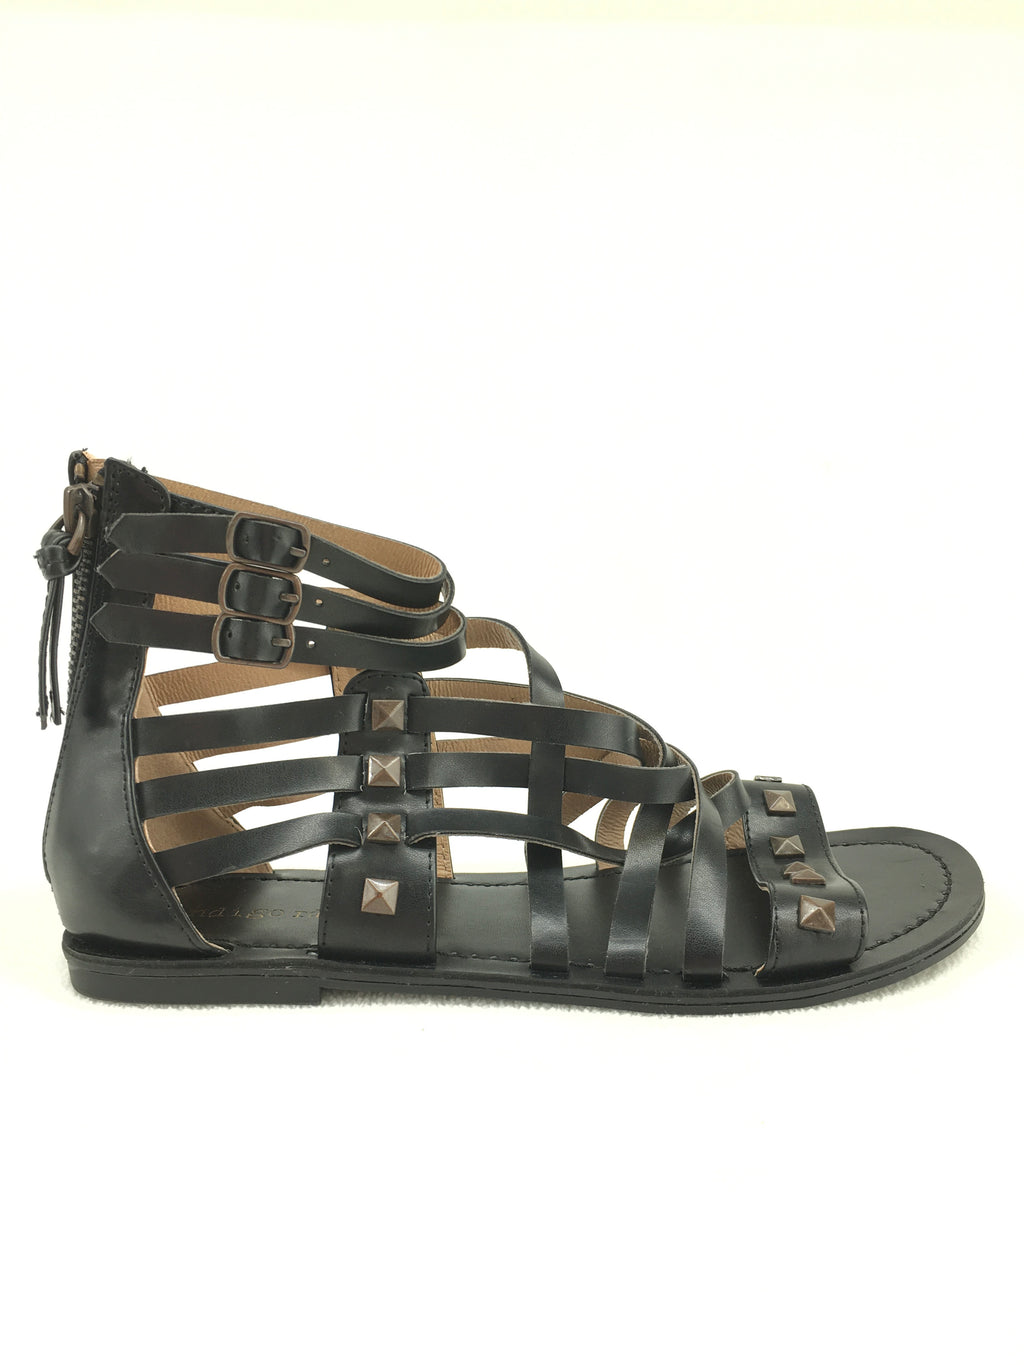 Indigo Rd. Dansel Sandals Size 8